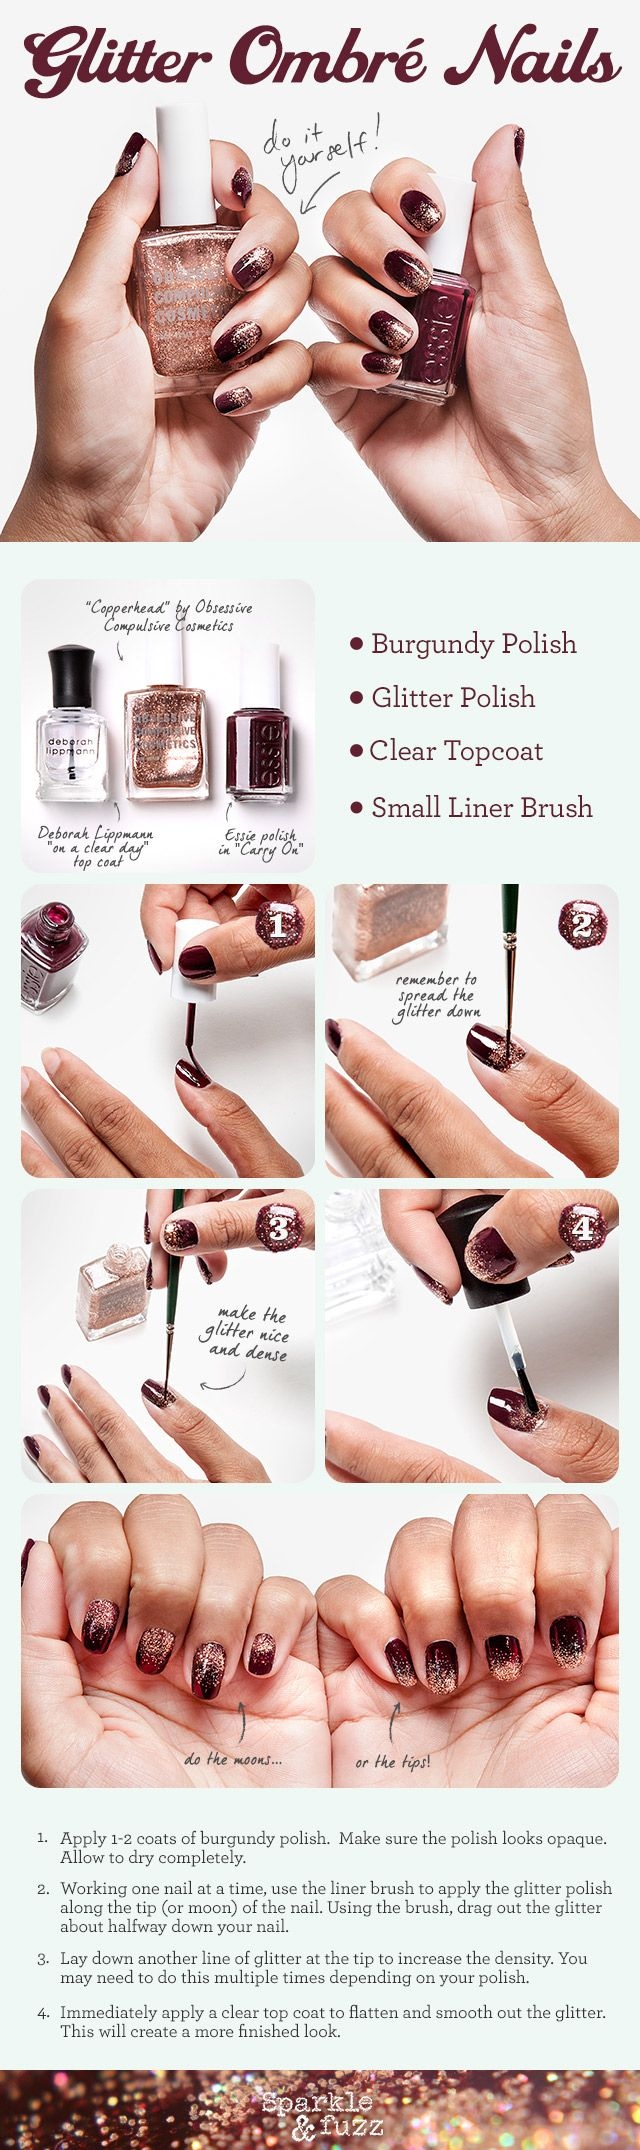 Glitter Ombre Nails DIY - Inspired by The Great Gatsby